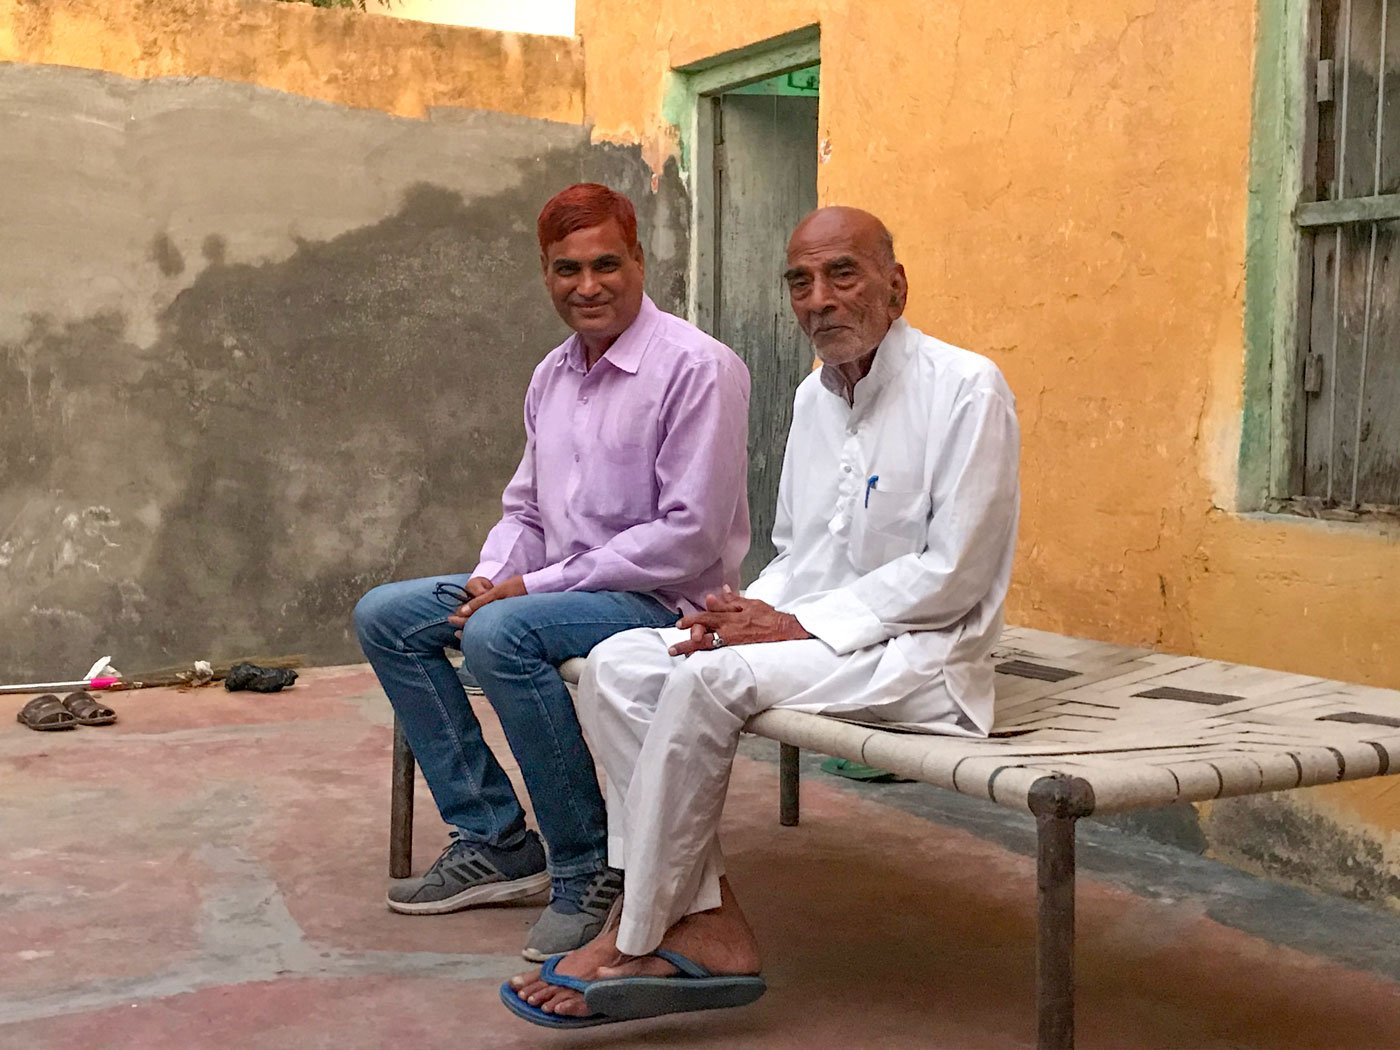 Writer-farmer Dularam saharan (left) of Bharang village at the house of well-known veteran columnist Madhavji Sharma, in Churu town: 'Kambal and coat ka jamaana chala gaya'